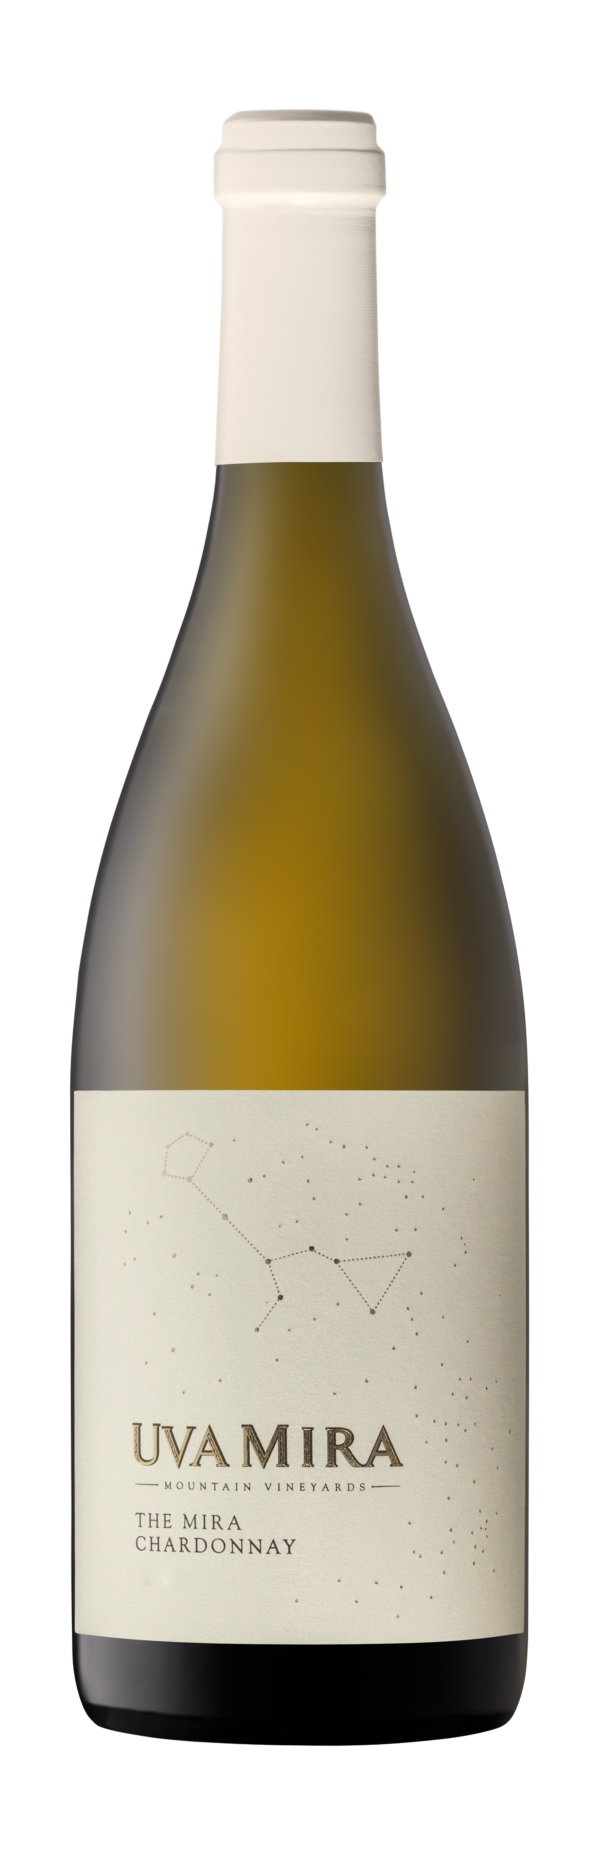 Uva Mira Mountain Vineyards, The Mira Chardonnay, Stellenbosch, South Africa, 2017 1